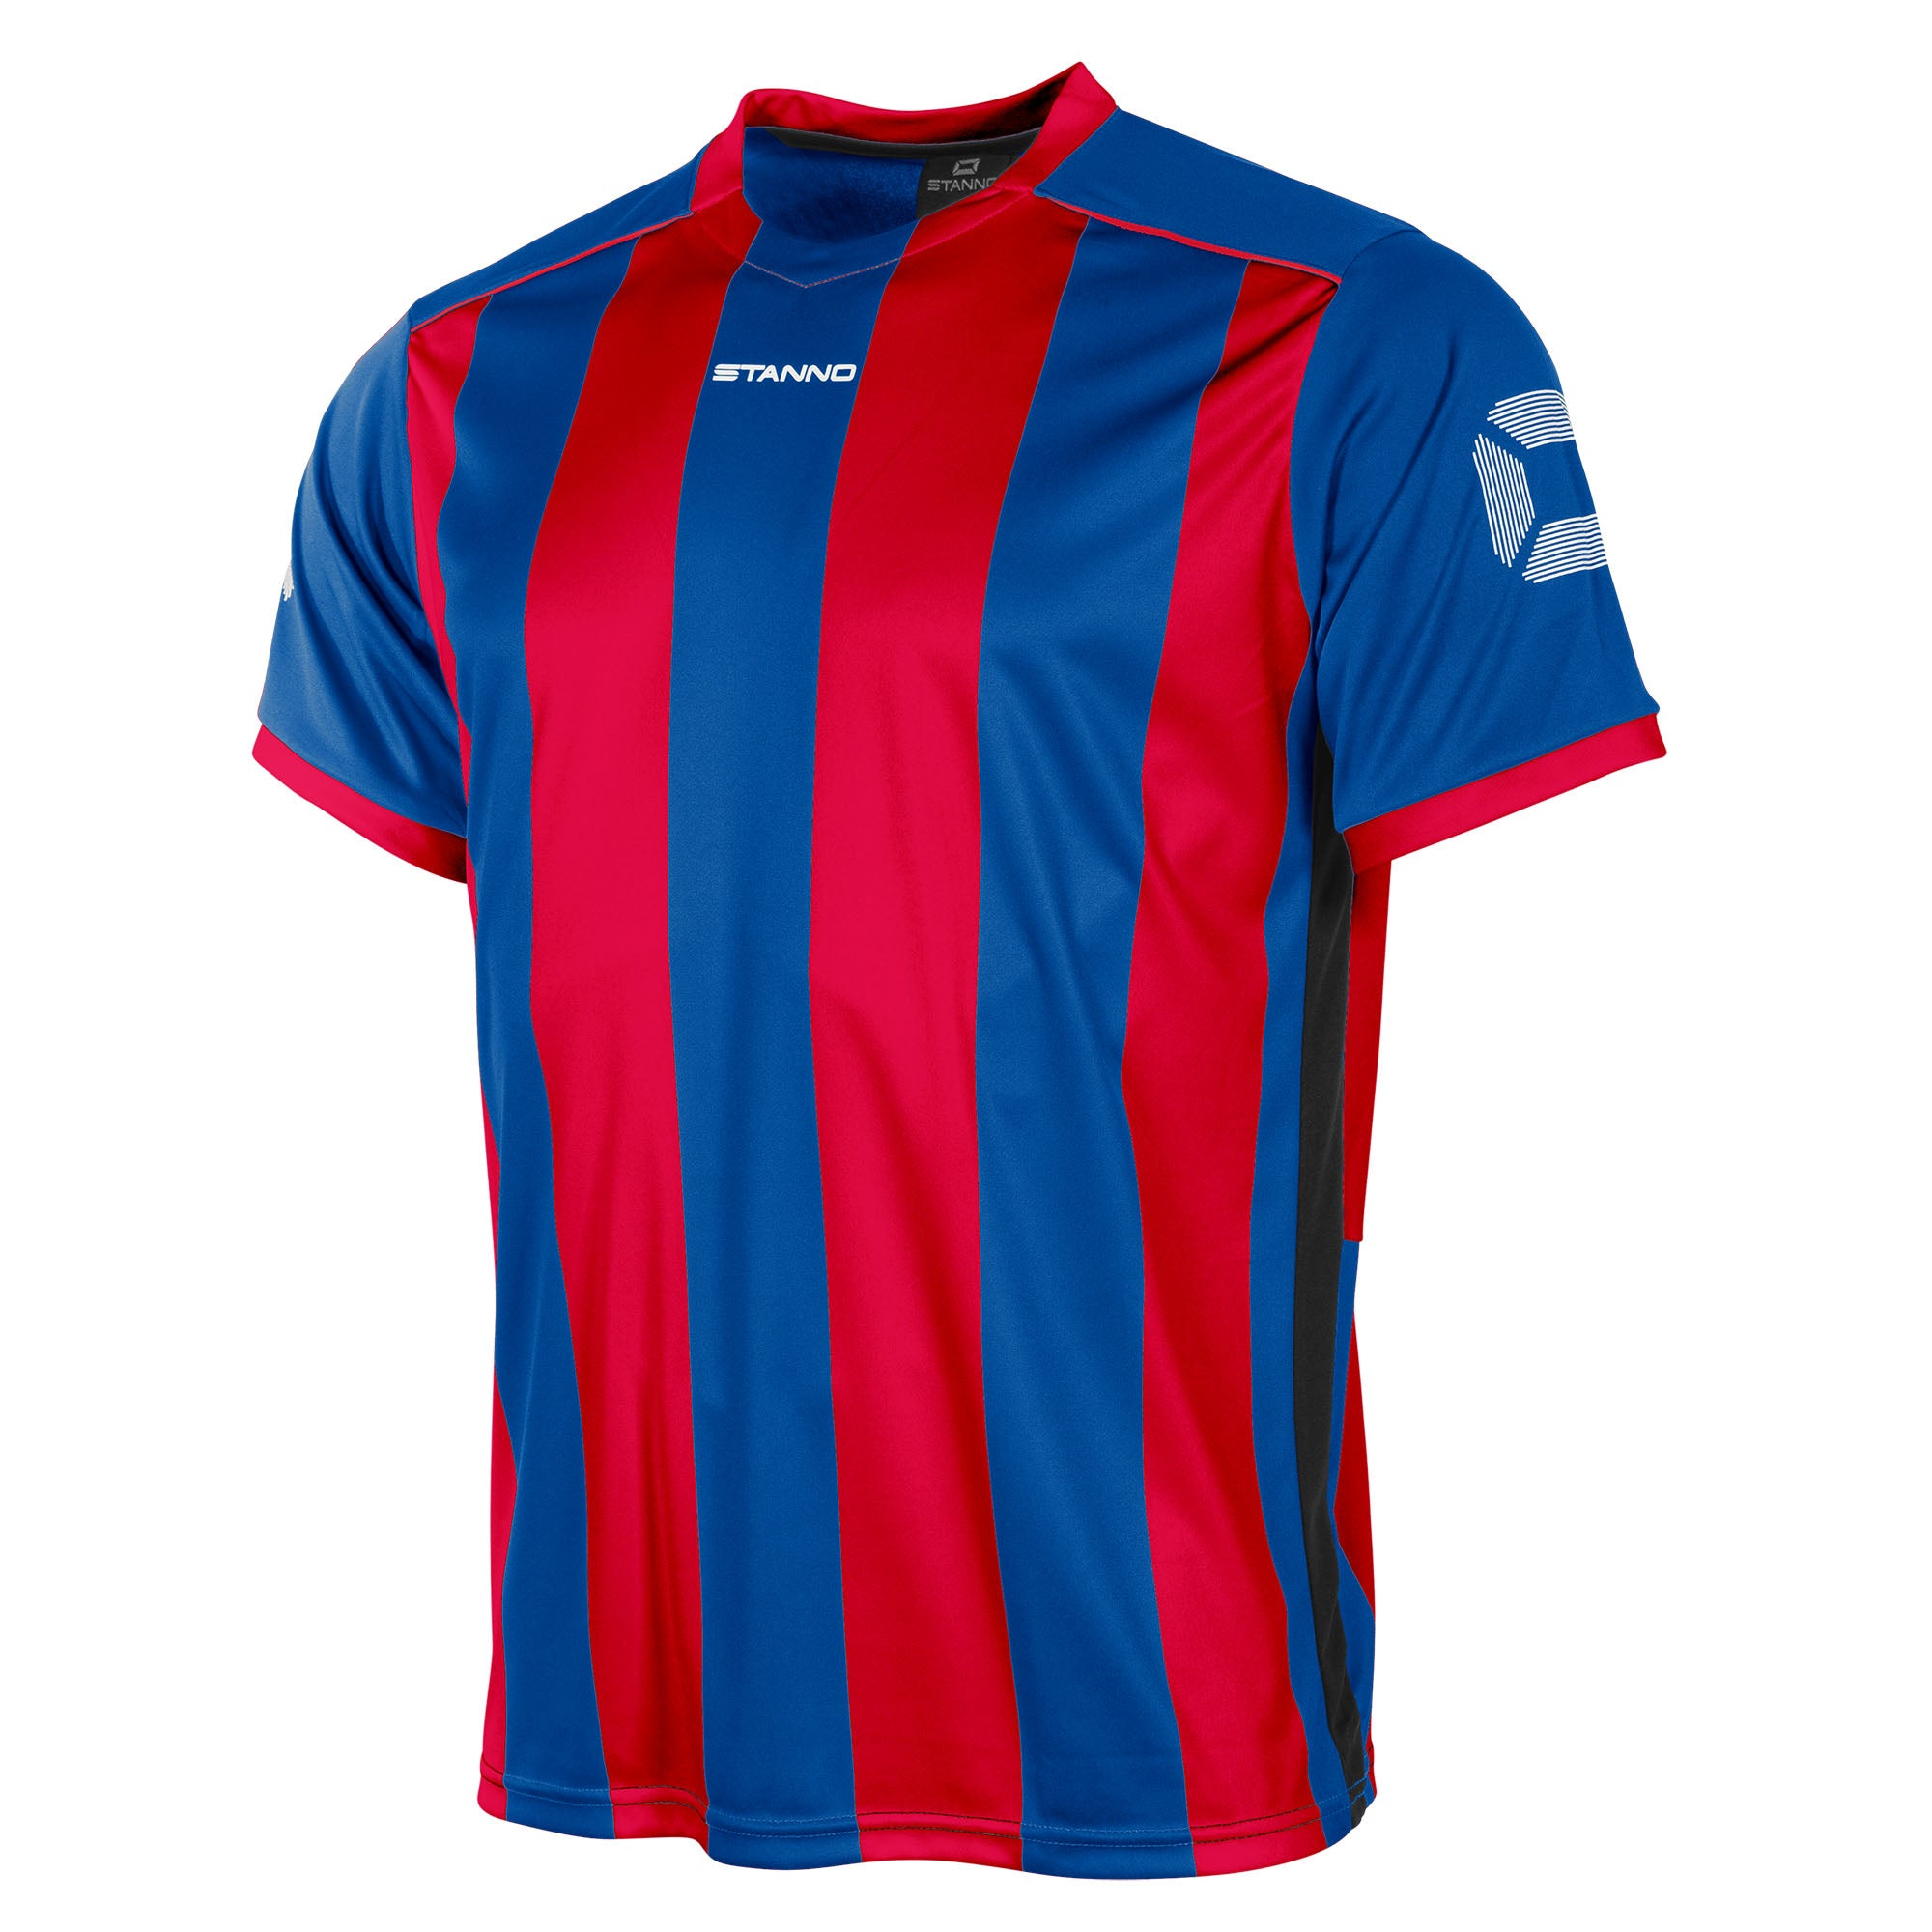 Front of Stanno Brighton short sleeved shirt in royal blue and red vertical stripes, central printed Stanno text logo on the chest